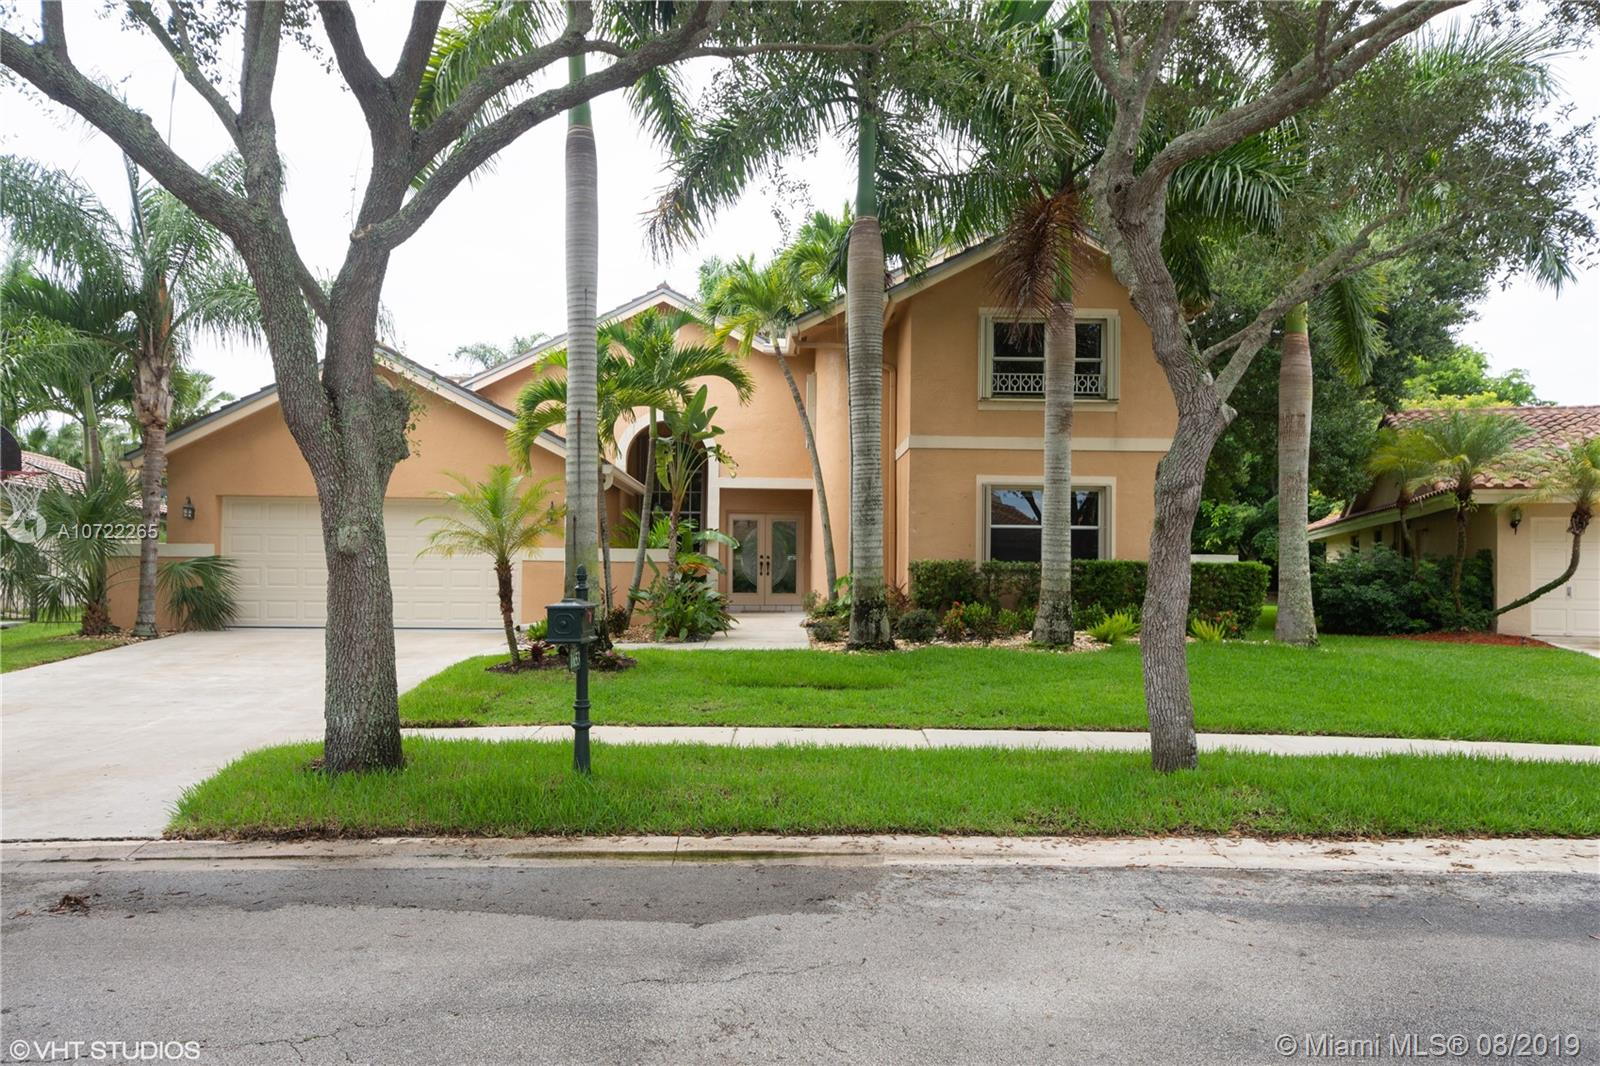 """2 story home: 5 bedrooms, 3 bathrooms, over 3,000 sqft! Fenced back yard features 36 foot pool & lake view. Walk to town center: shops, grocery, restaurants & parks. """"A"""" rated schools: walk to elementary & middle; zoned for Cypress Bay H.S. Vaulted smooth-texture ceilings, updated lighting & new paint. Kitchen has cherry cabinets, granite, & stainless steel appliances. Large master suite: 2 walk-in closets & pool access. Laundry room with food pantry"""